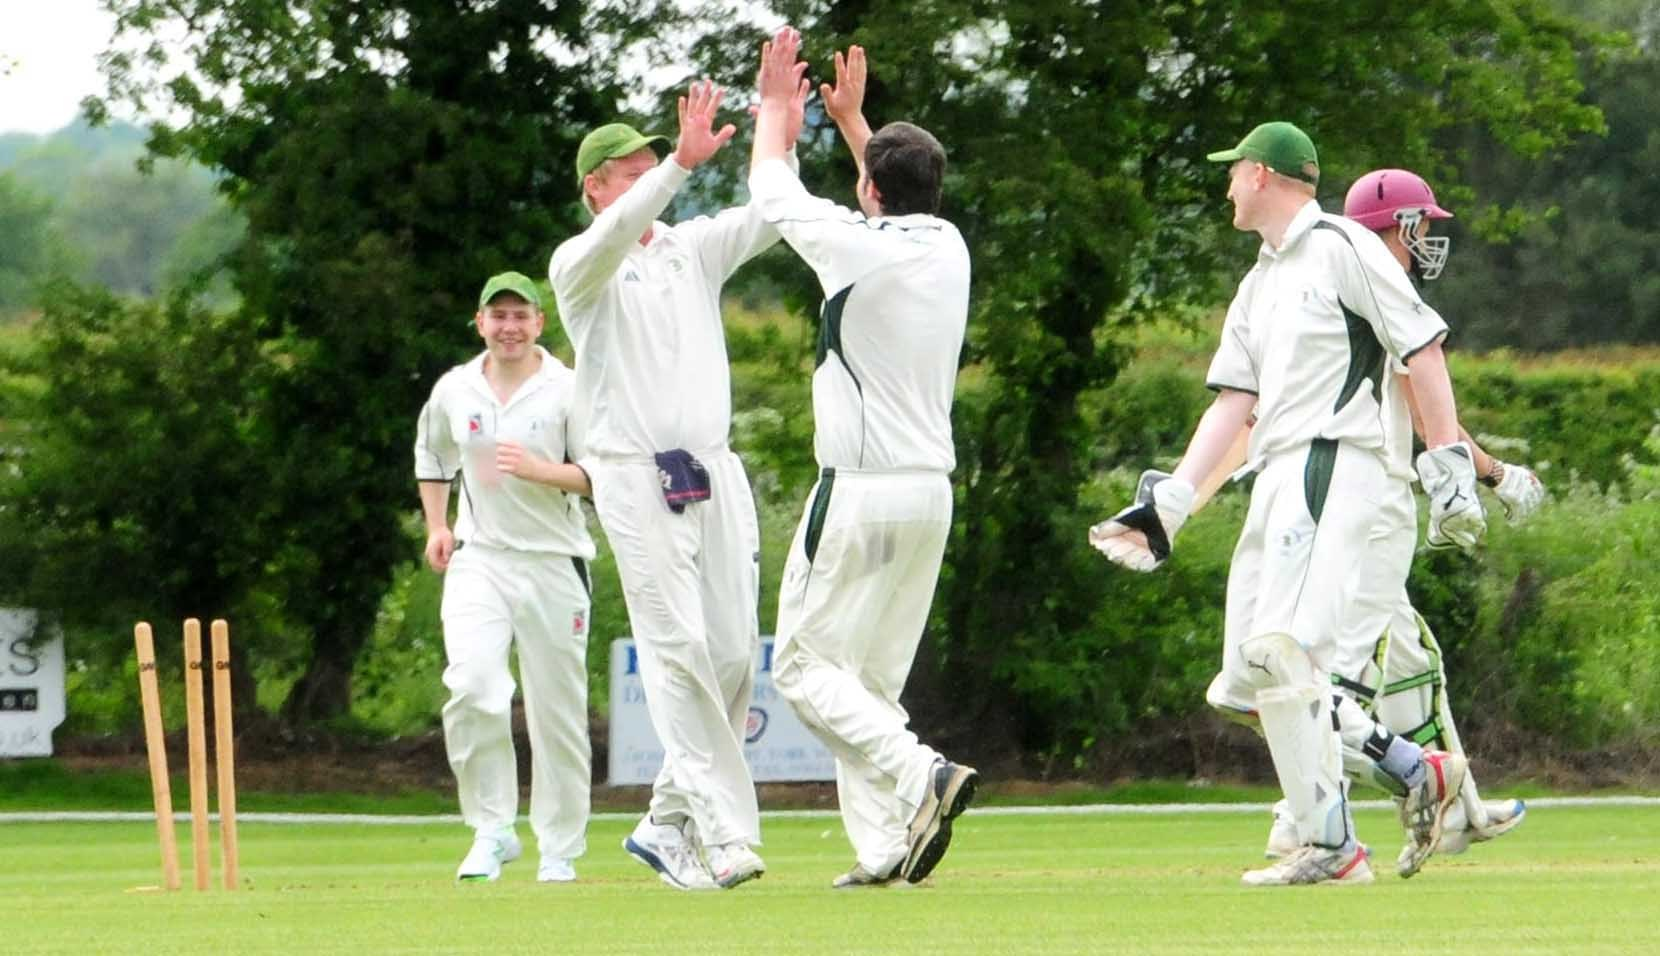 Senior Cricket League: Dunnington knocked out of Premier Cup